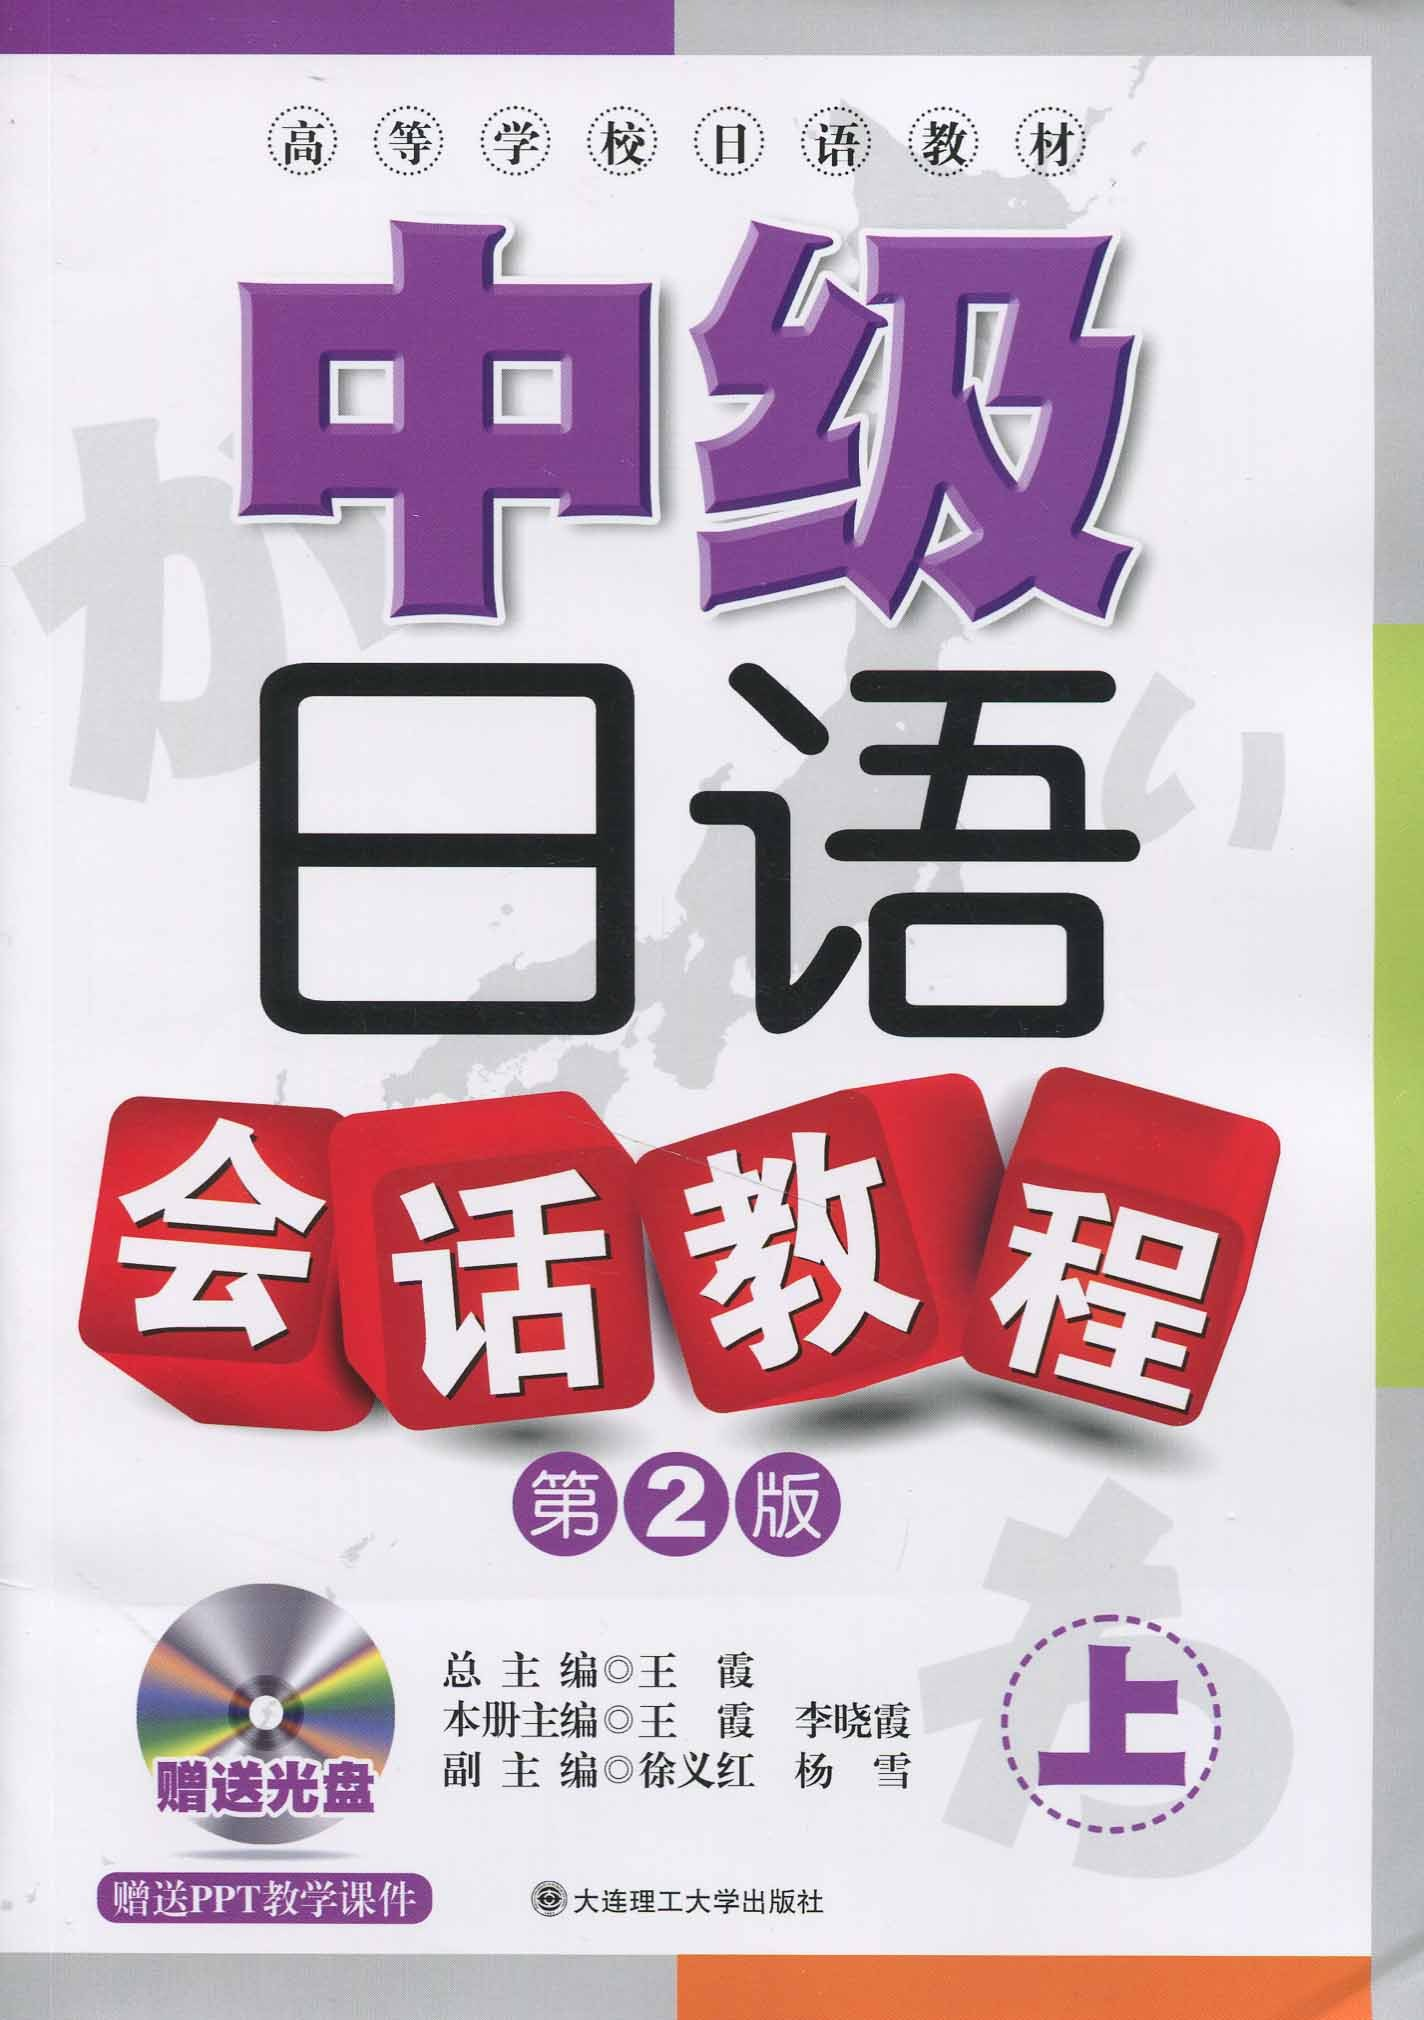 Intermediate japanese conversation course (on) (2nd edition) (with tray)